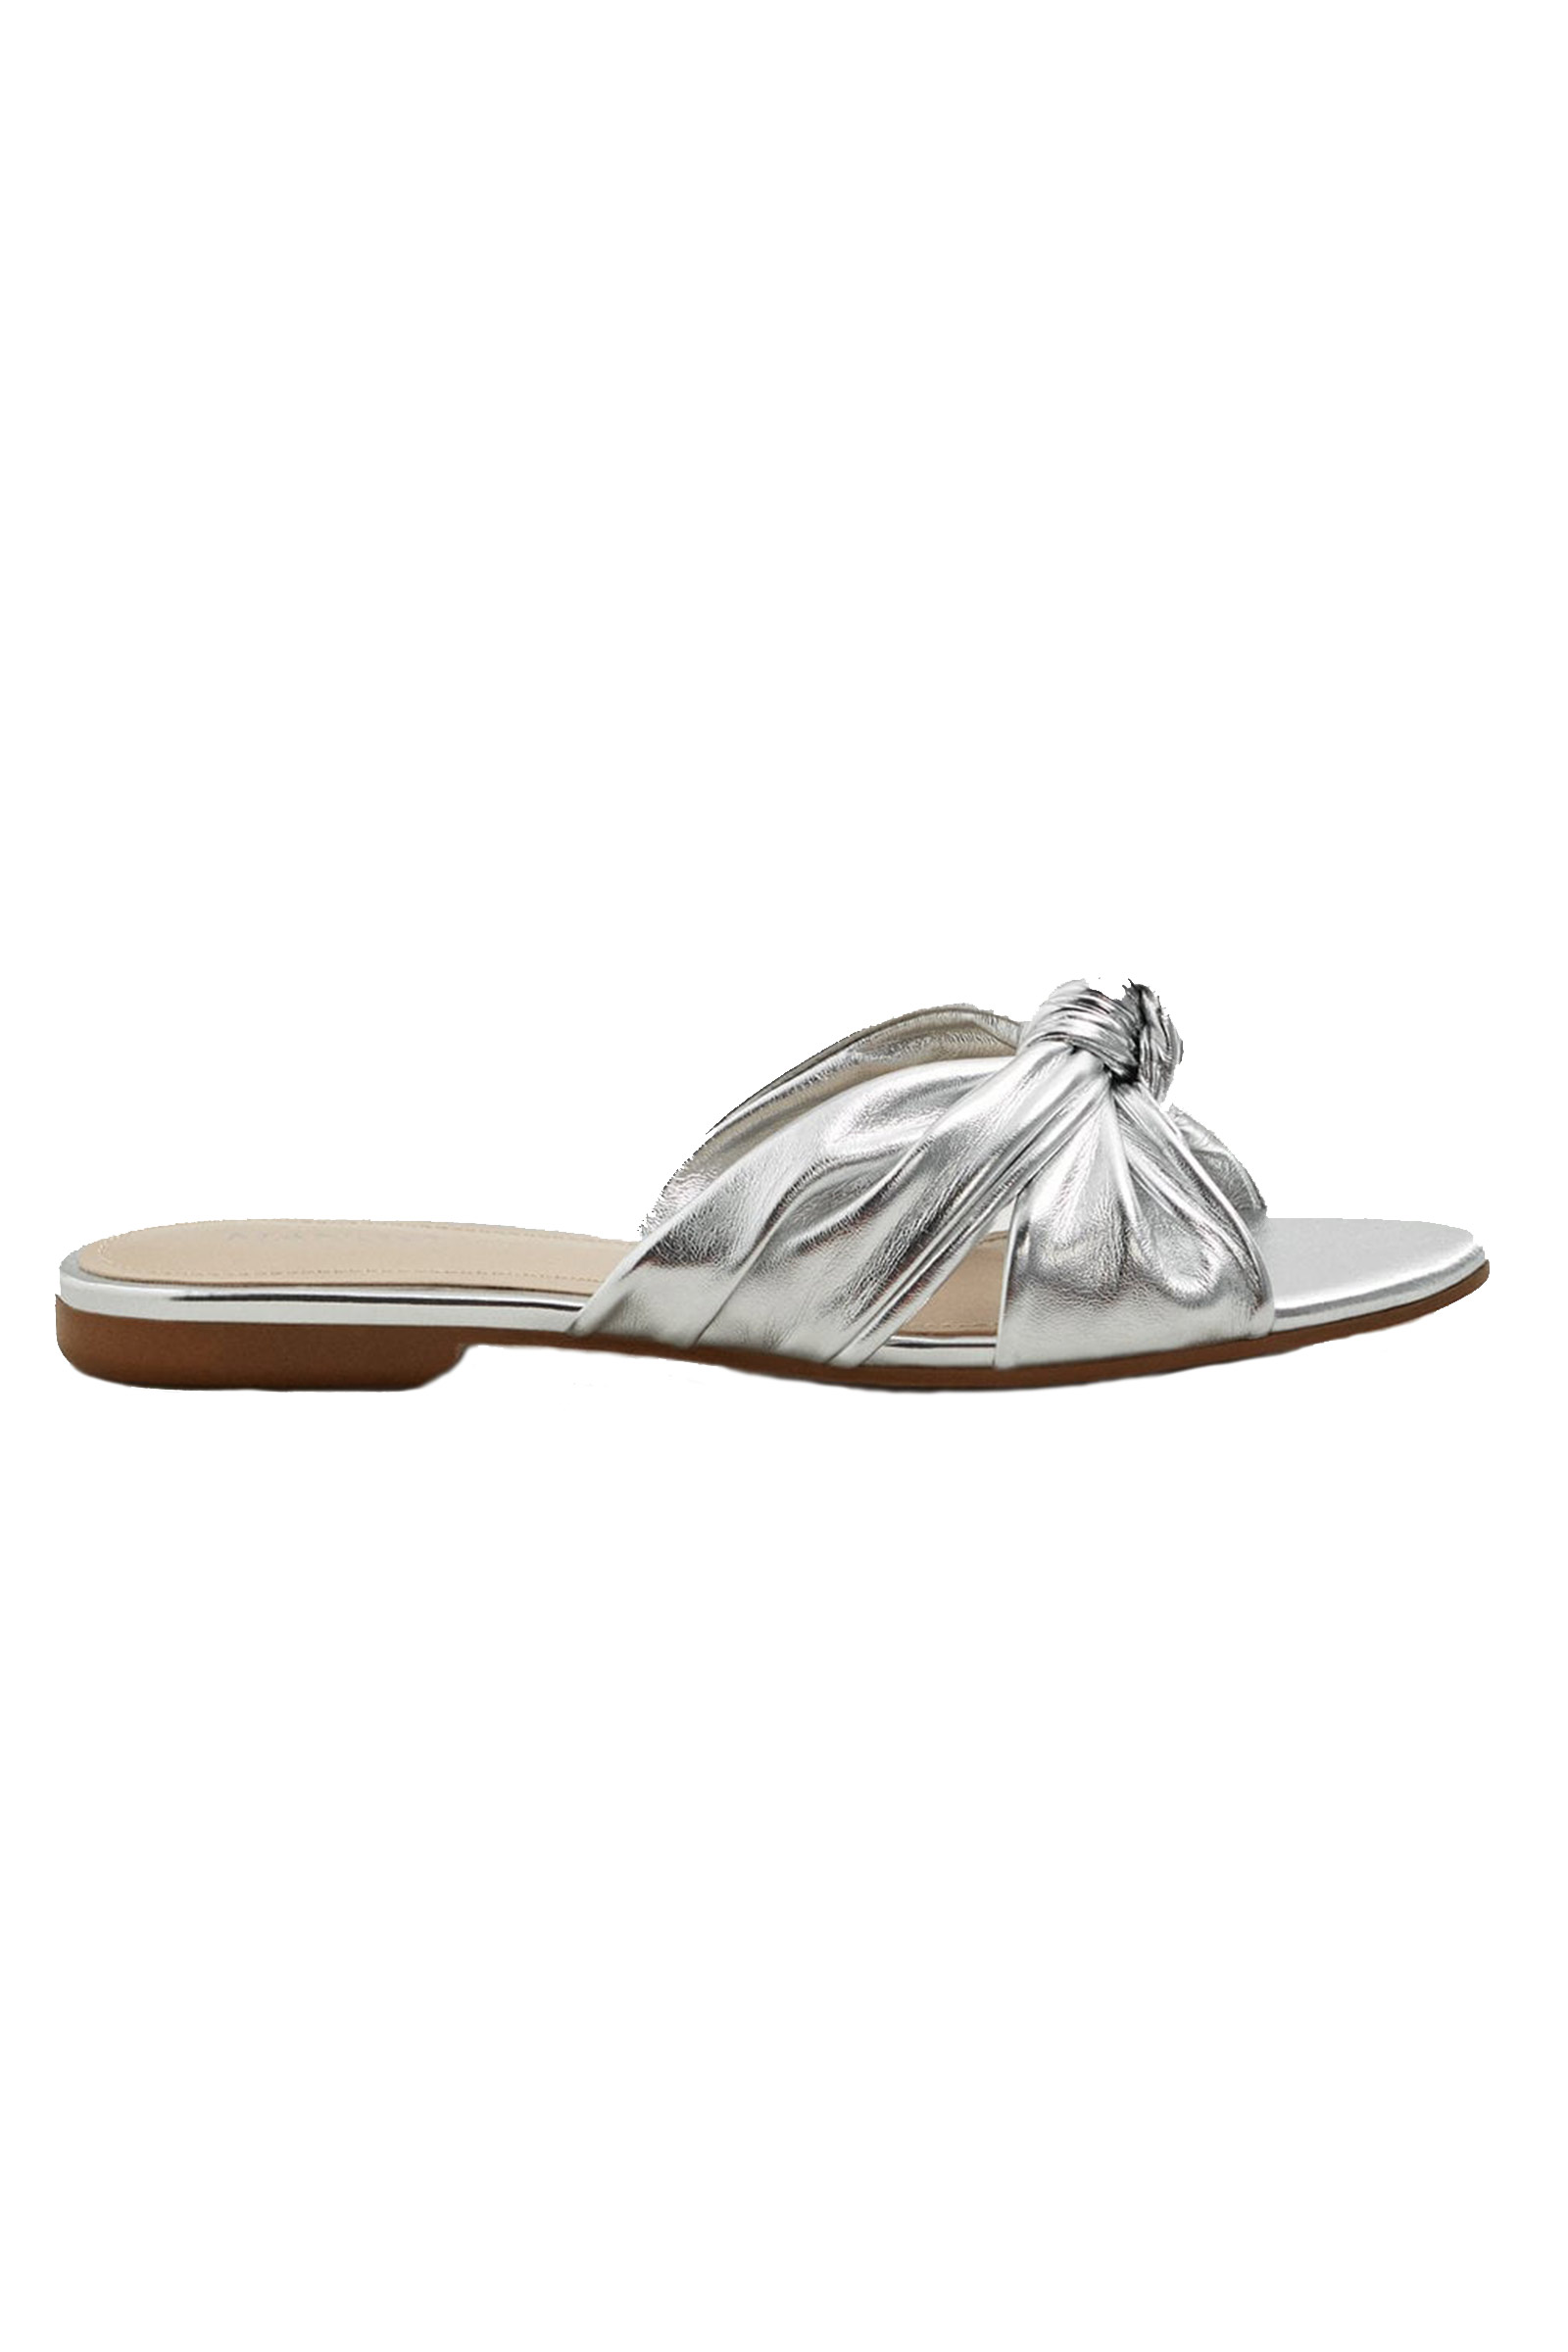 Click to Buy Mango Silver Slides